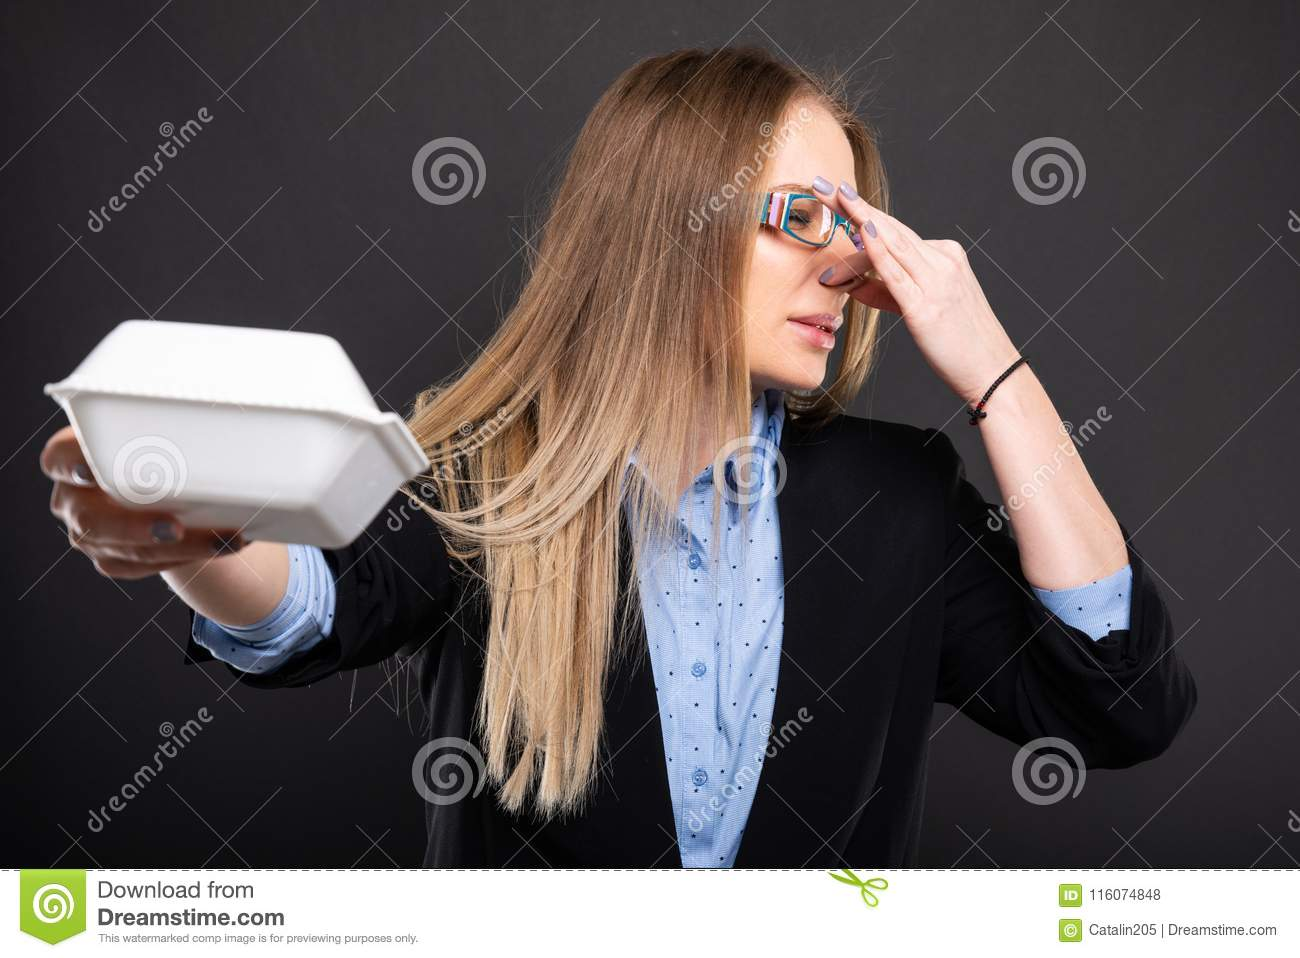 Business Lady Wearing Blue Glasses Holding Bad Smelling